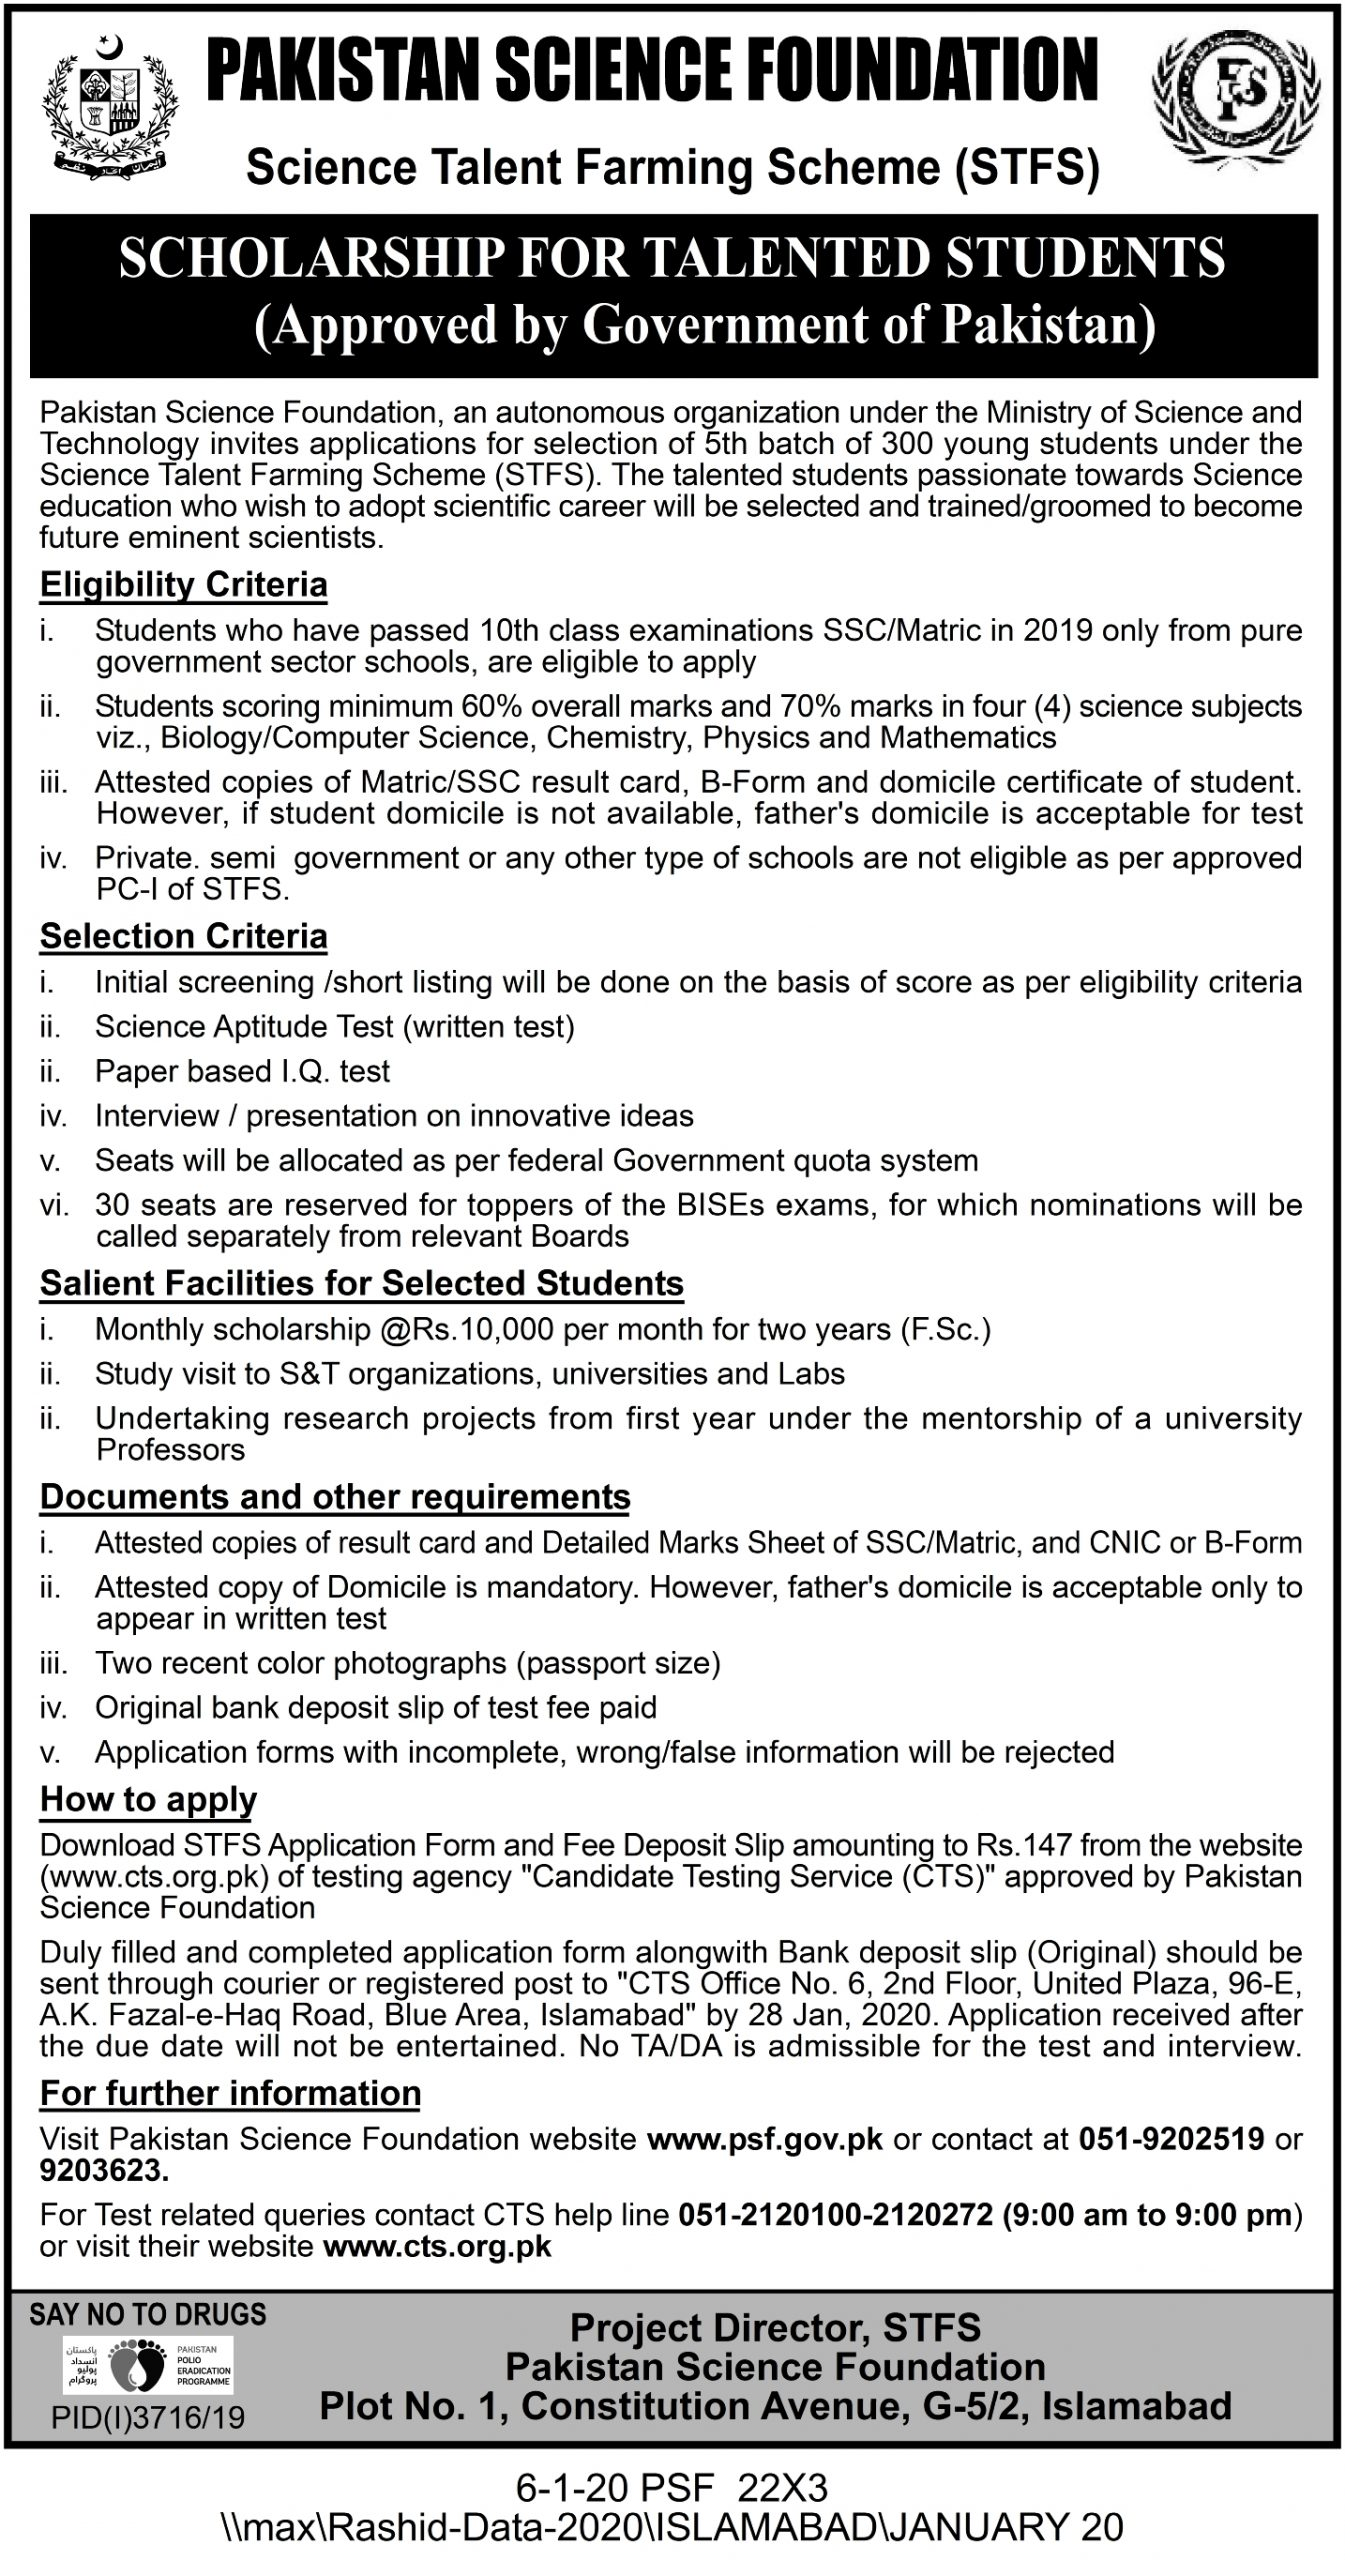 Pakistan Science Foundation Scholarship Program STFS 2020 CTS Application Form Roll No Slip download online